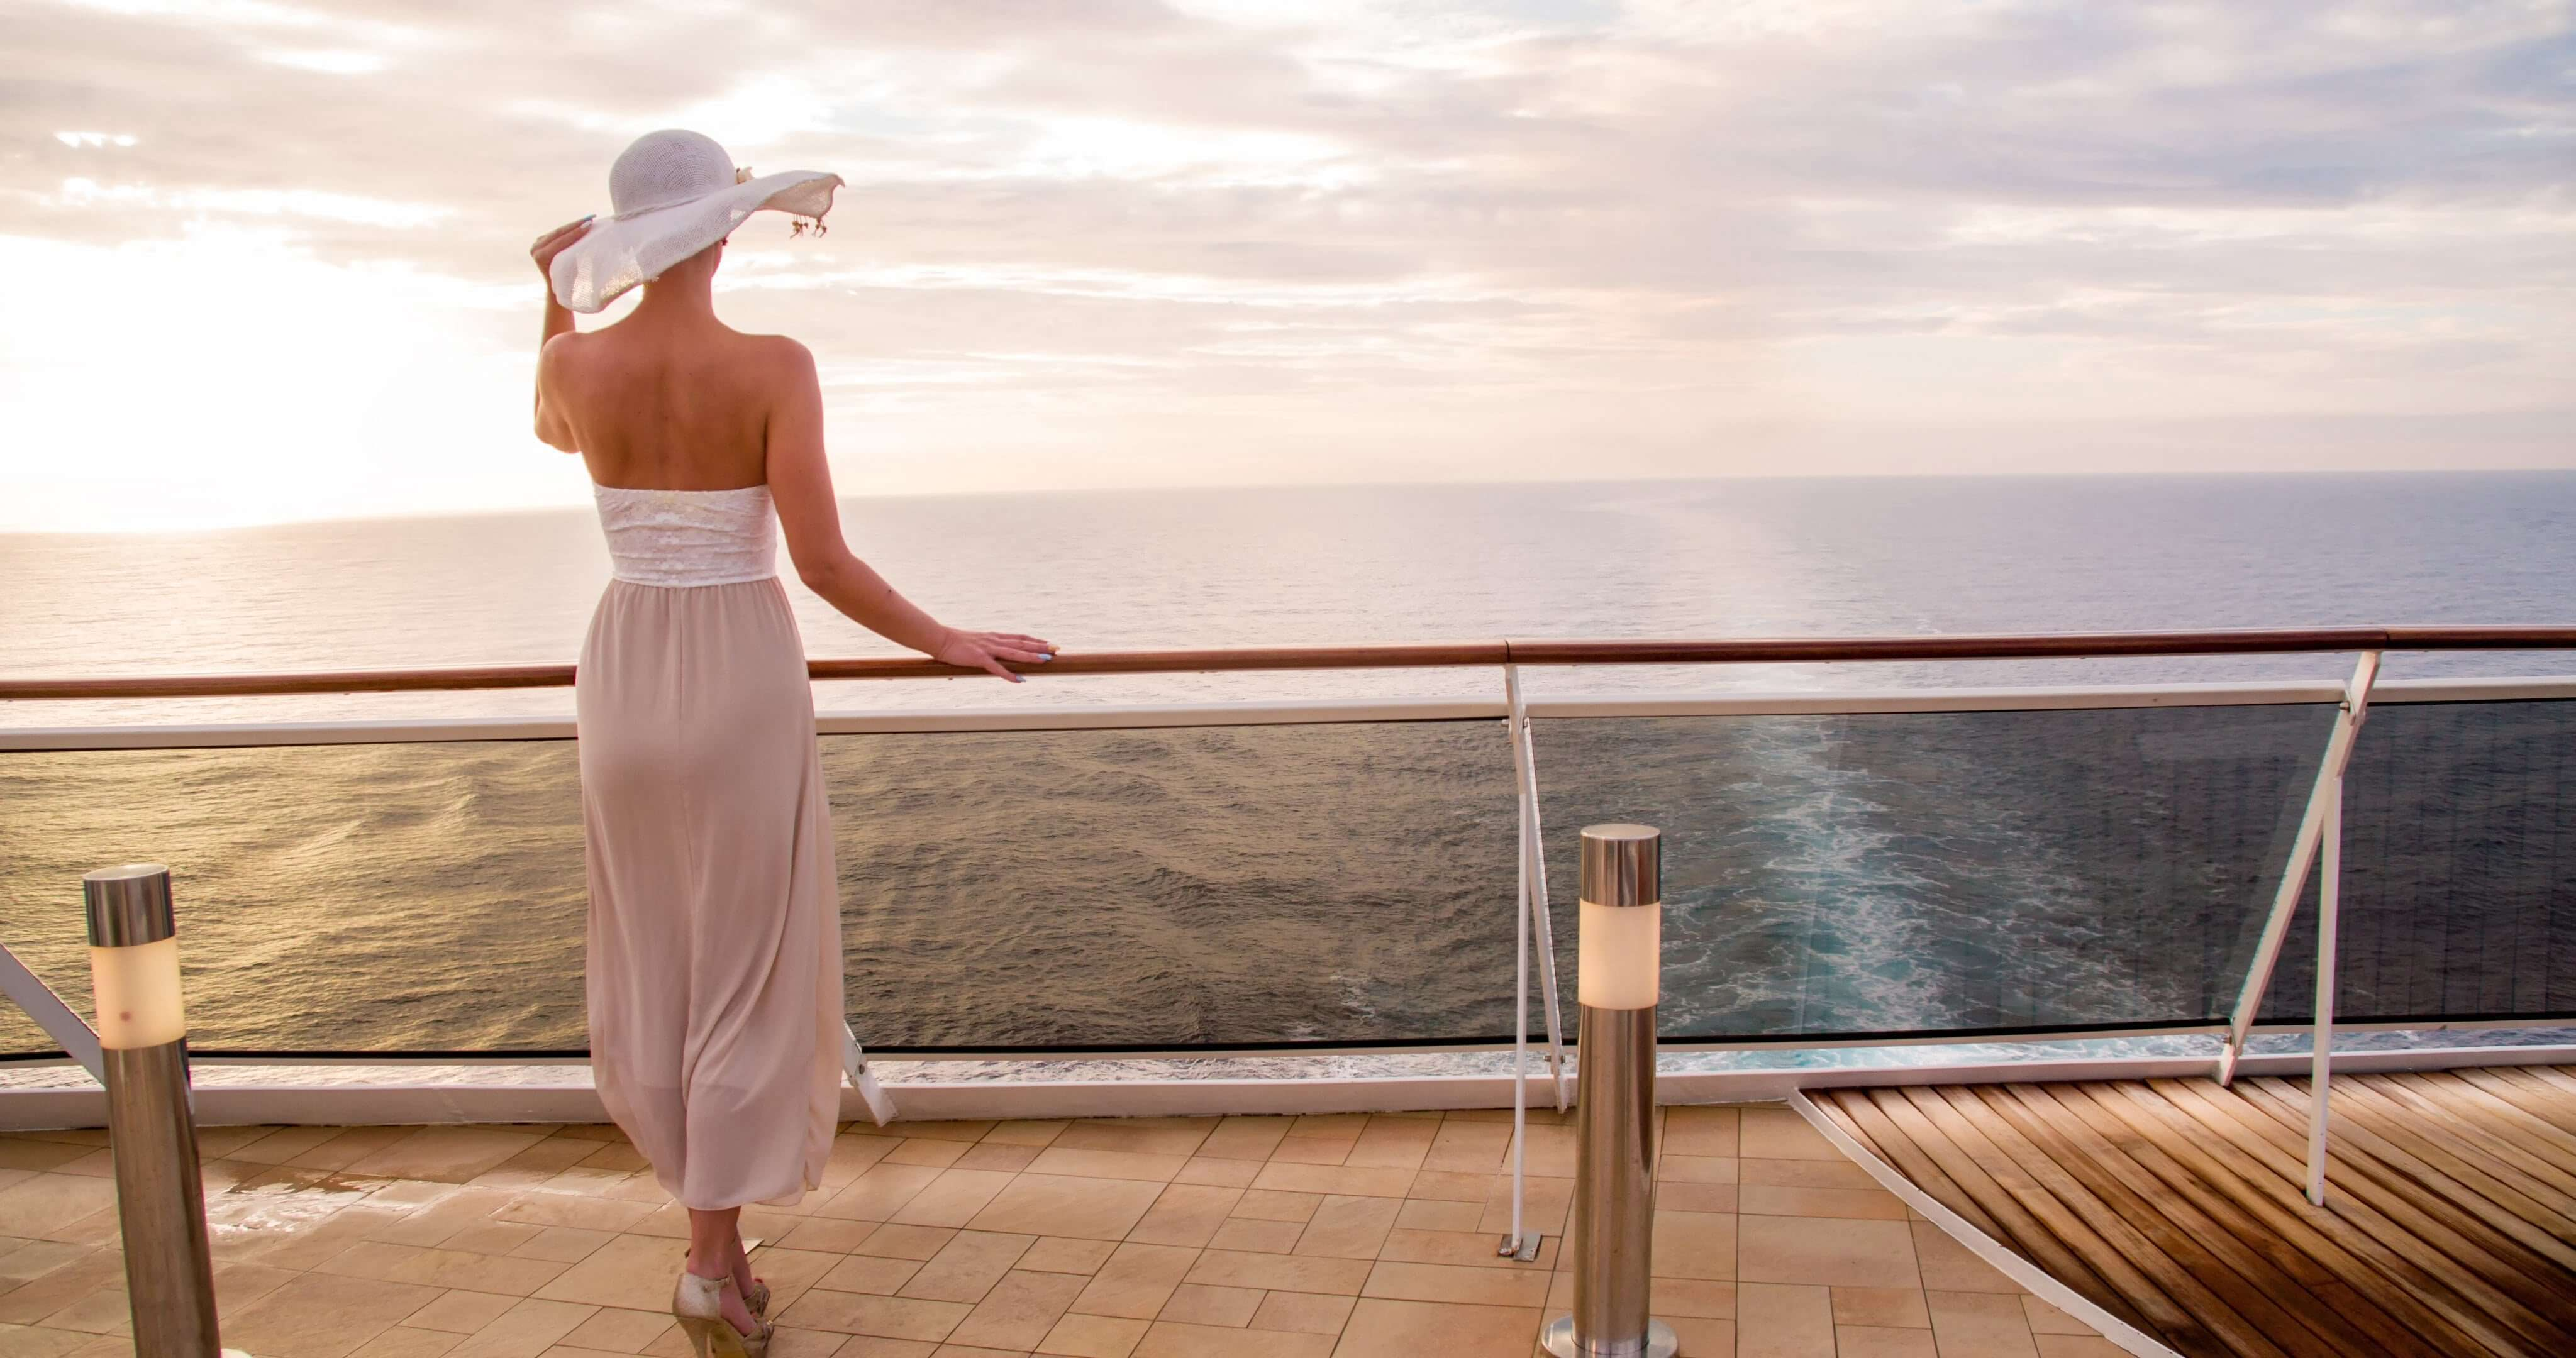 A woman looks out to sea from the deck of a ship